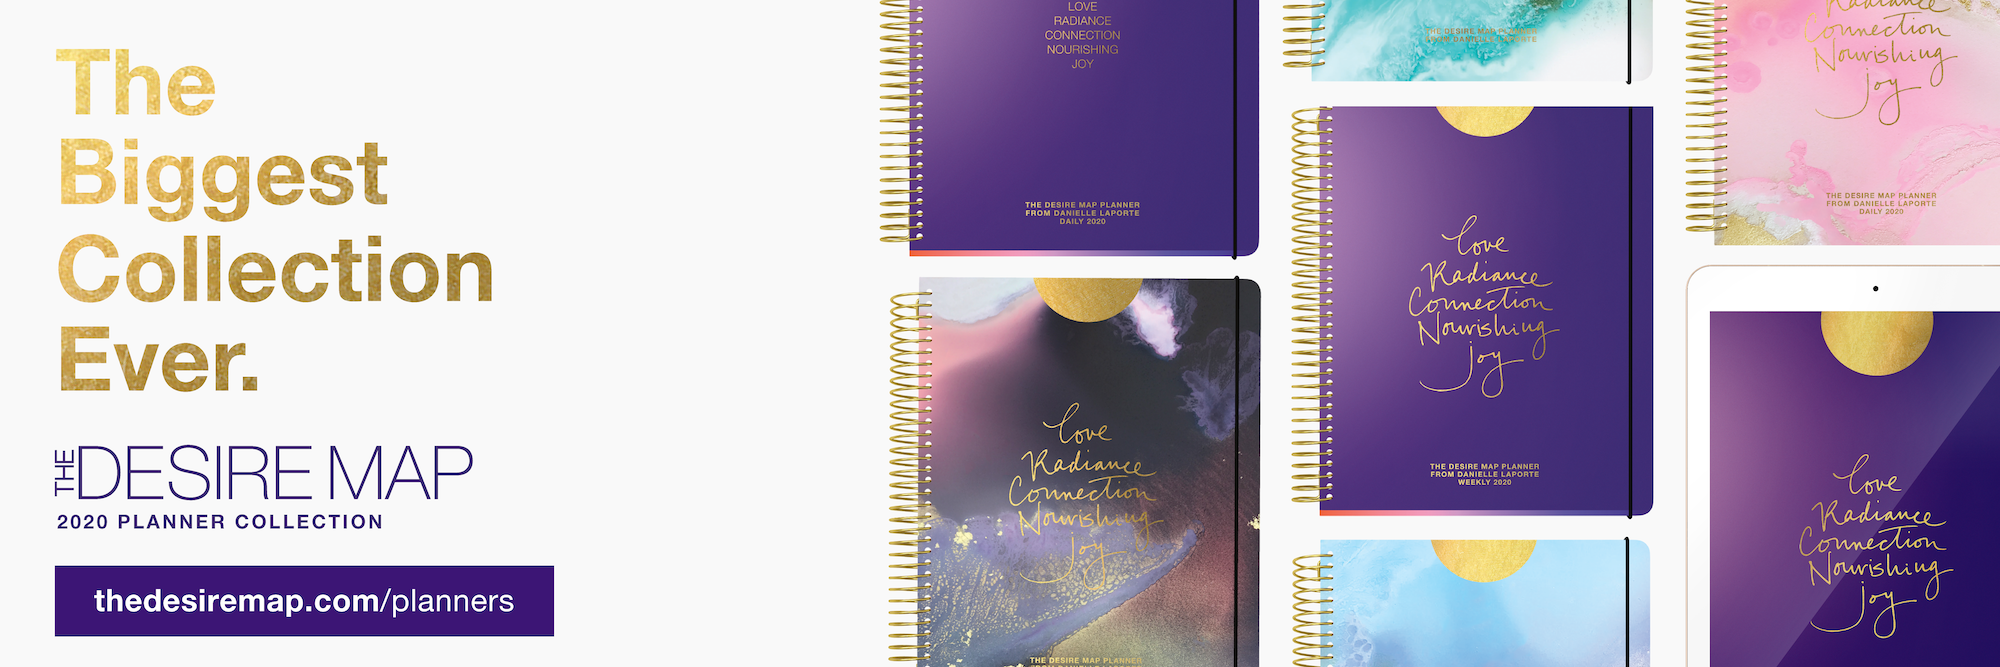 08-08-19-08-20-03_Planners2020.Website.ads_Shopify.PlannerPage.Banner.1.png